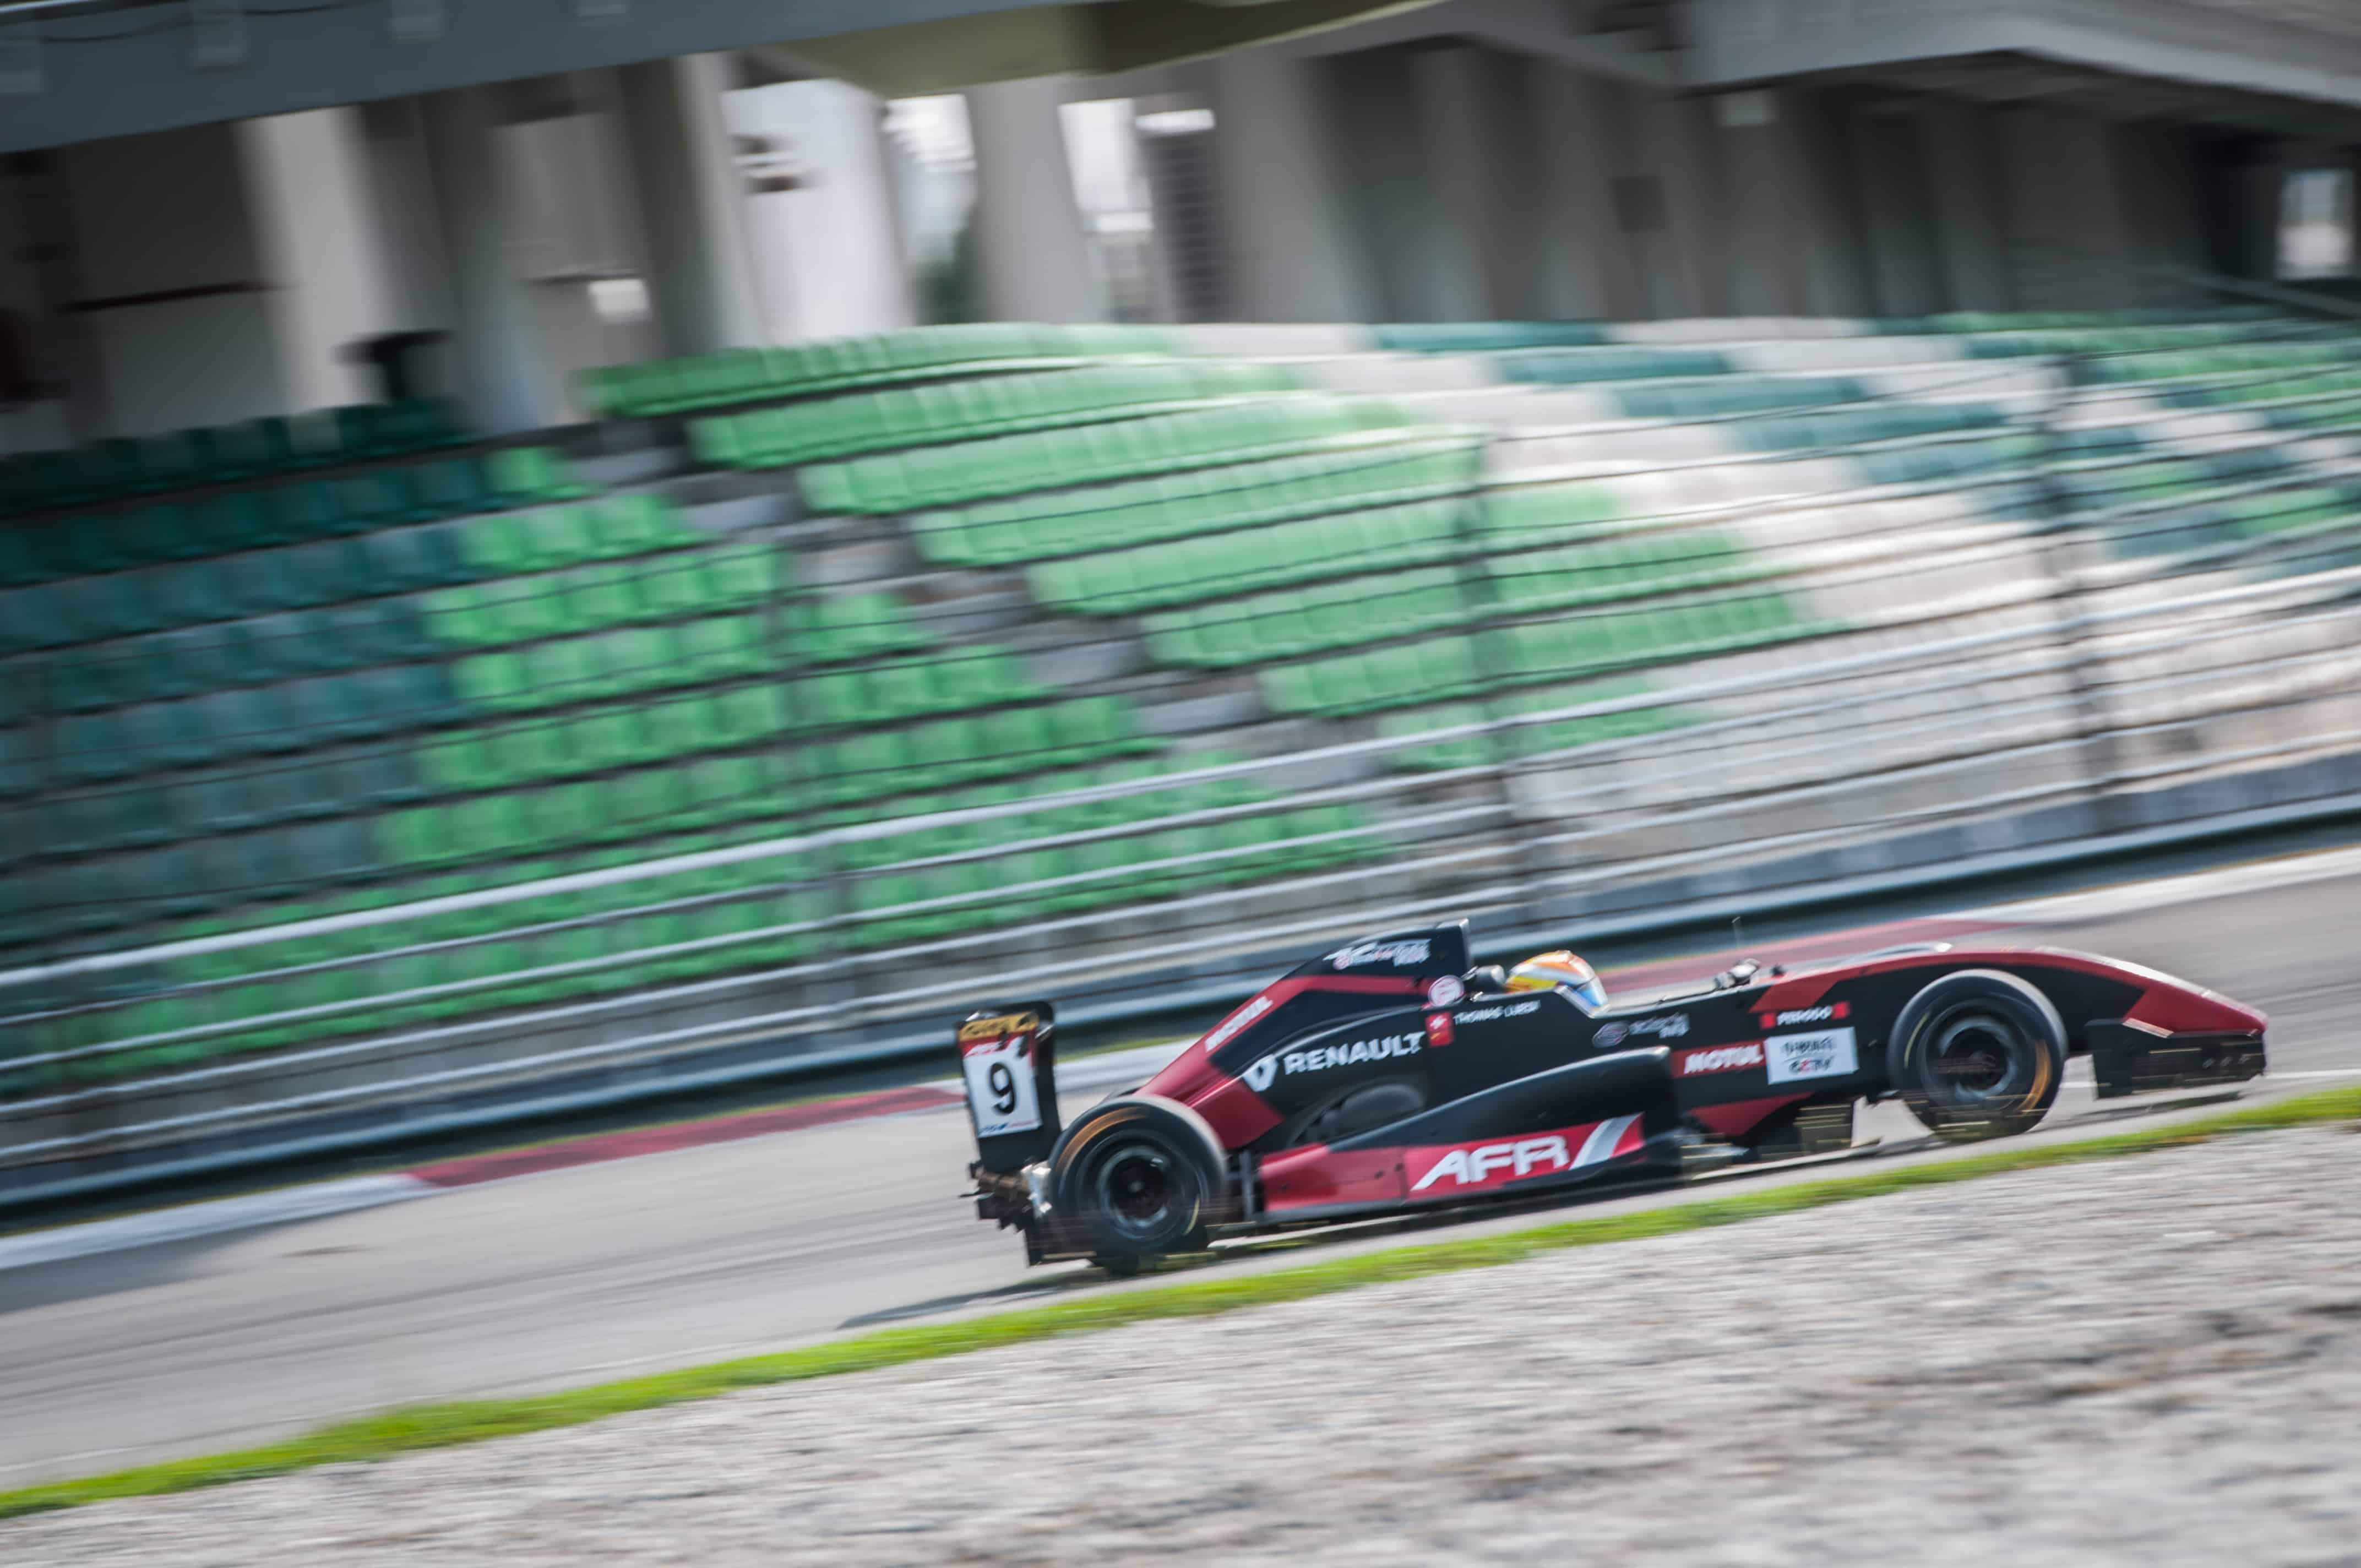 Https www prlog org 12638950 bar continues to lead asia formula renault championship after round 2 at sepang html